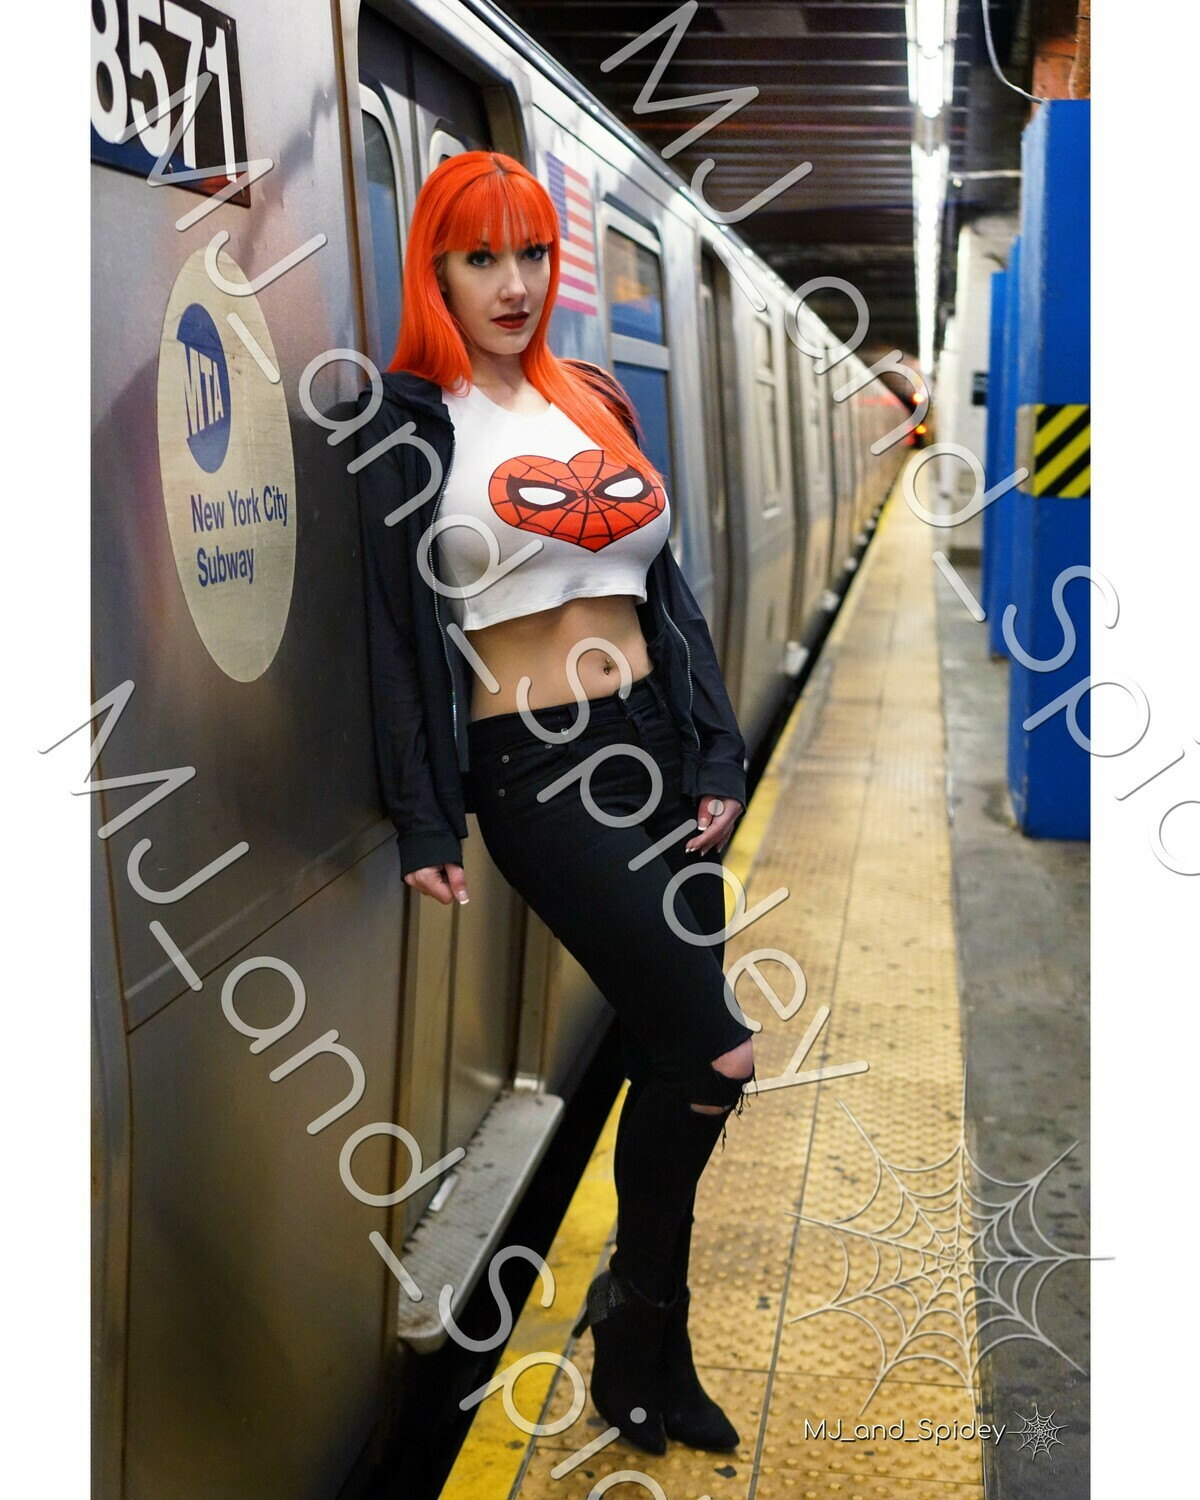 Marvel - Spider-Man - Mary Jane Watson - Classic No. 8 - 8x10 Cosplay Print (@MJ_and_Spidey, MJ and Spidey, Comics)